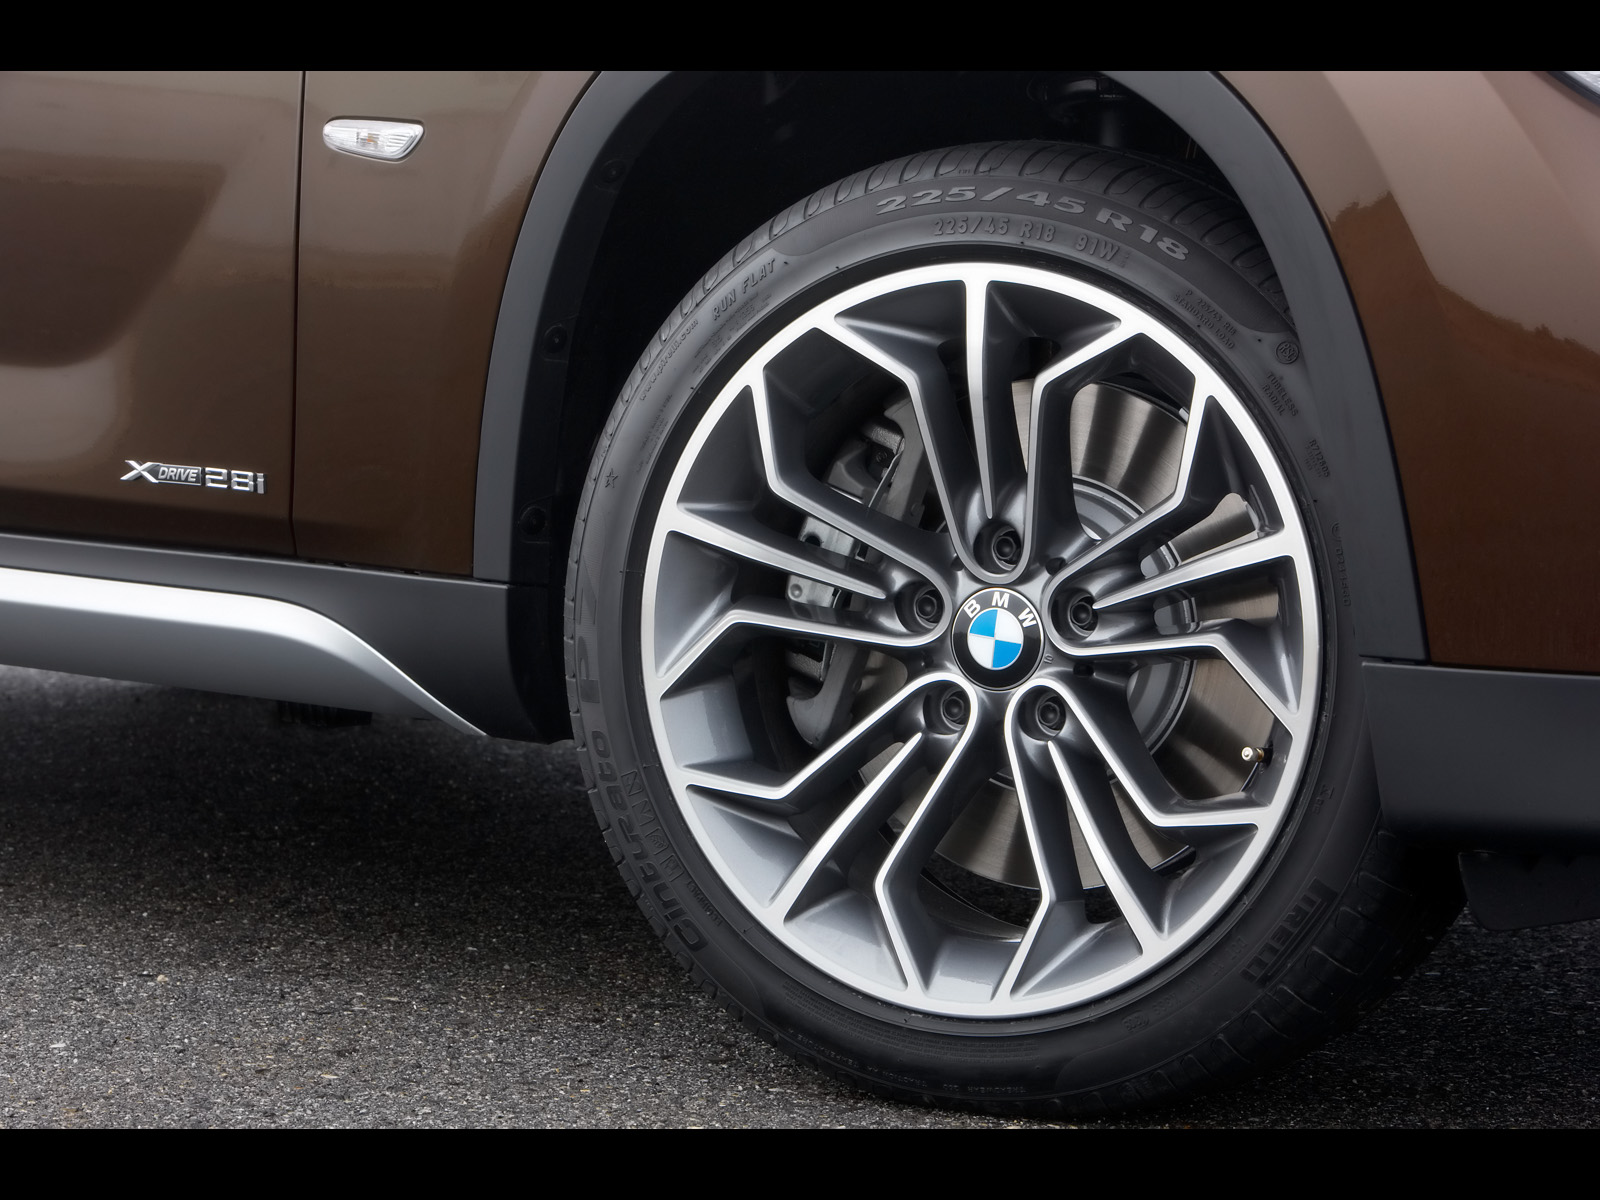 BMW X1 wheel wallpapers | BMW X1 wheel stock photos